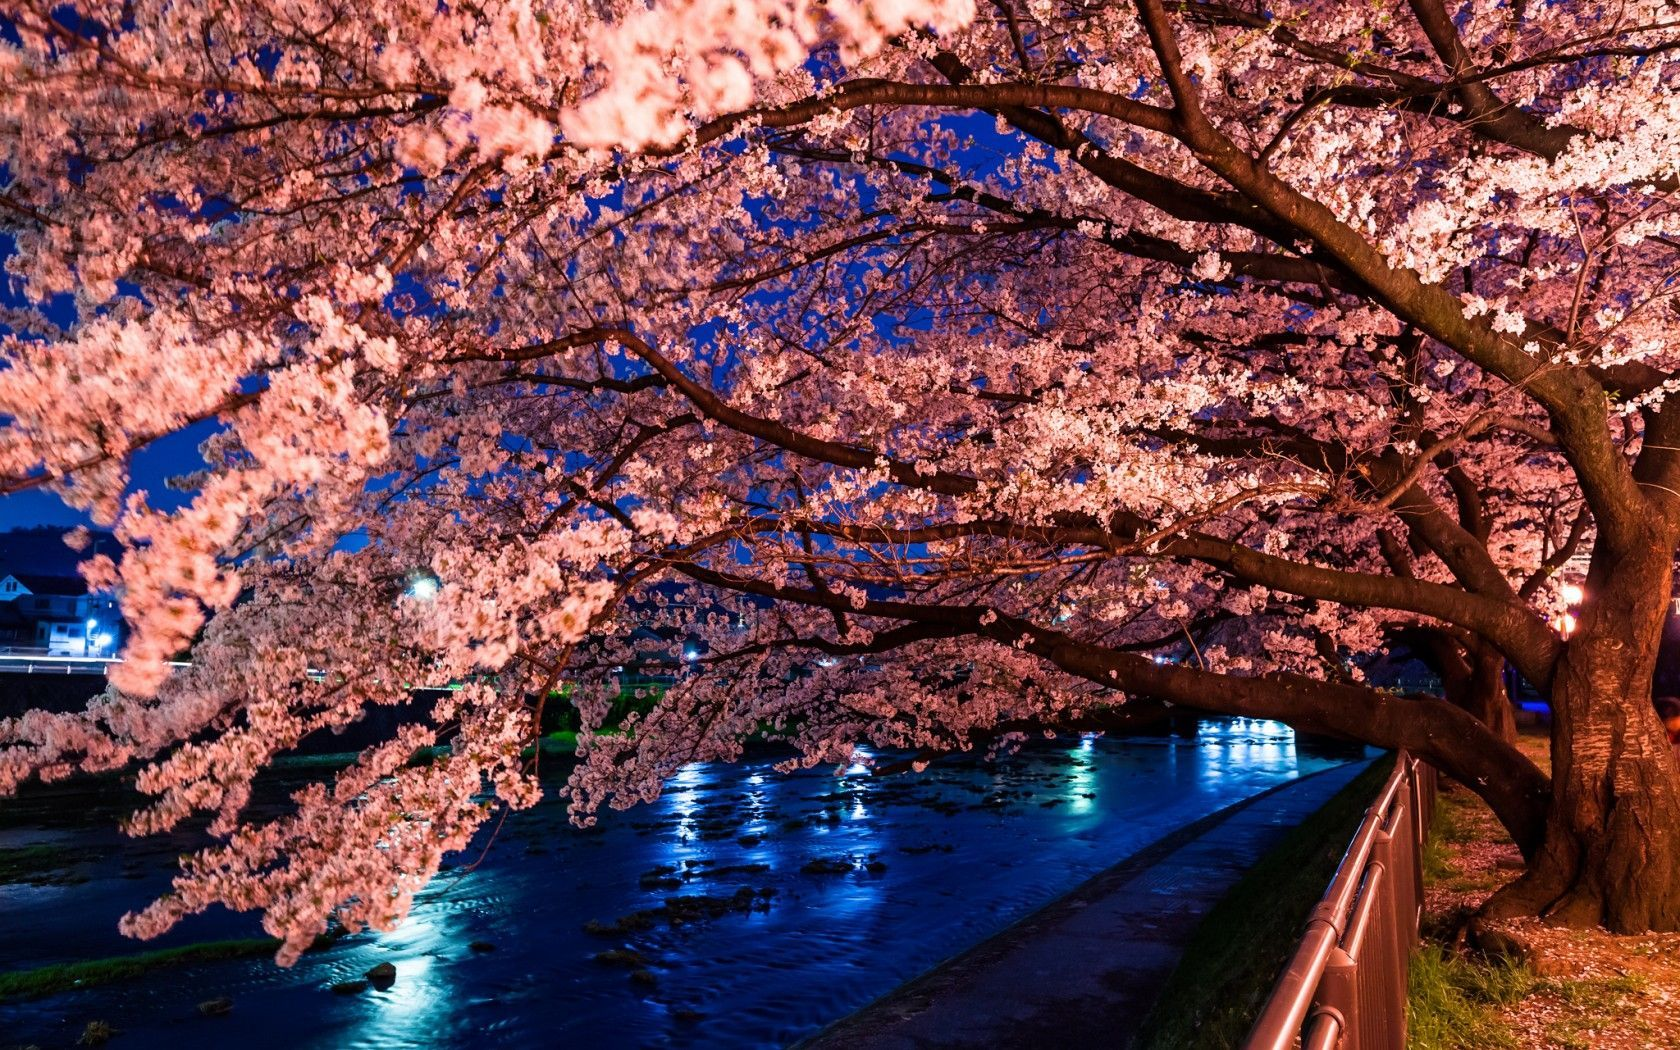 Download Japanese Cherry Blossom Desktop Wallpaper Gallery